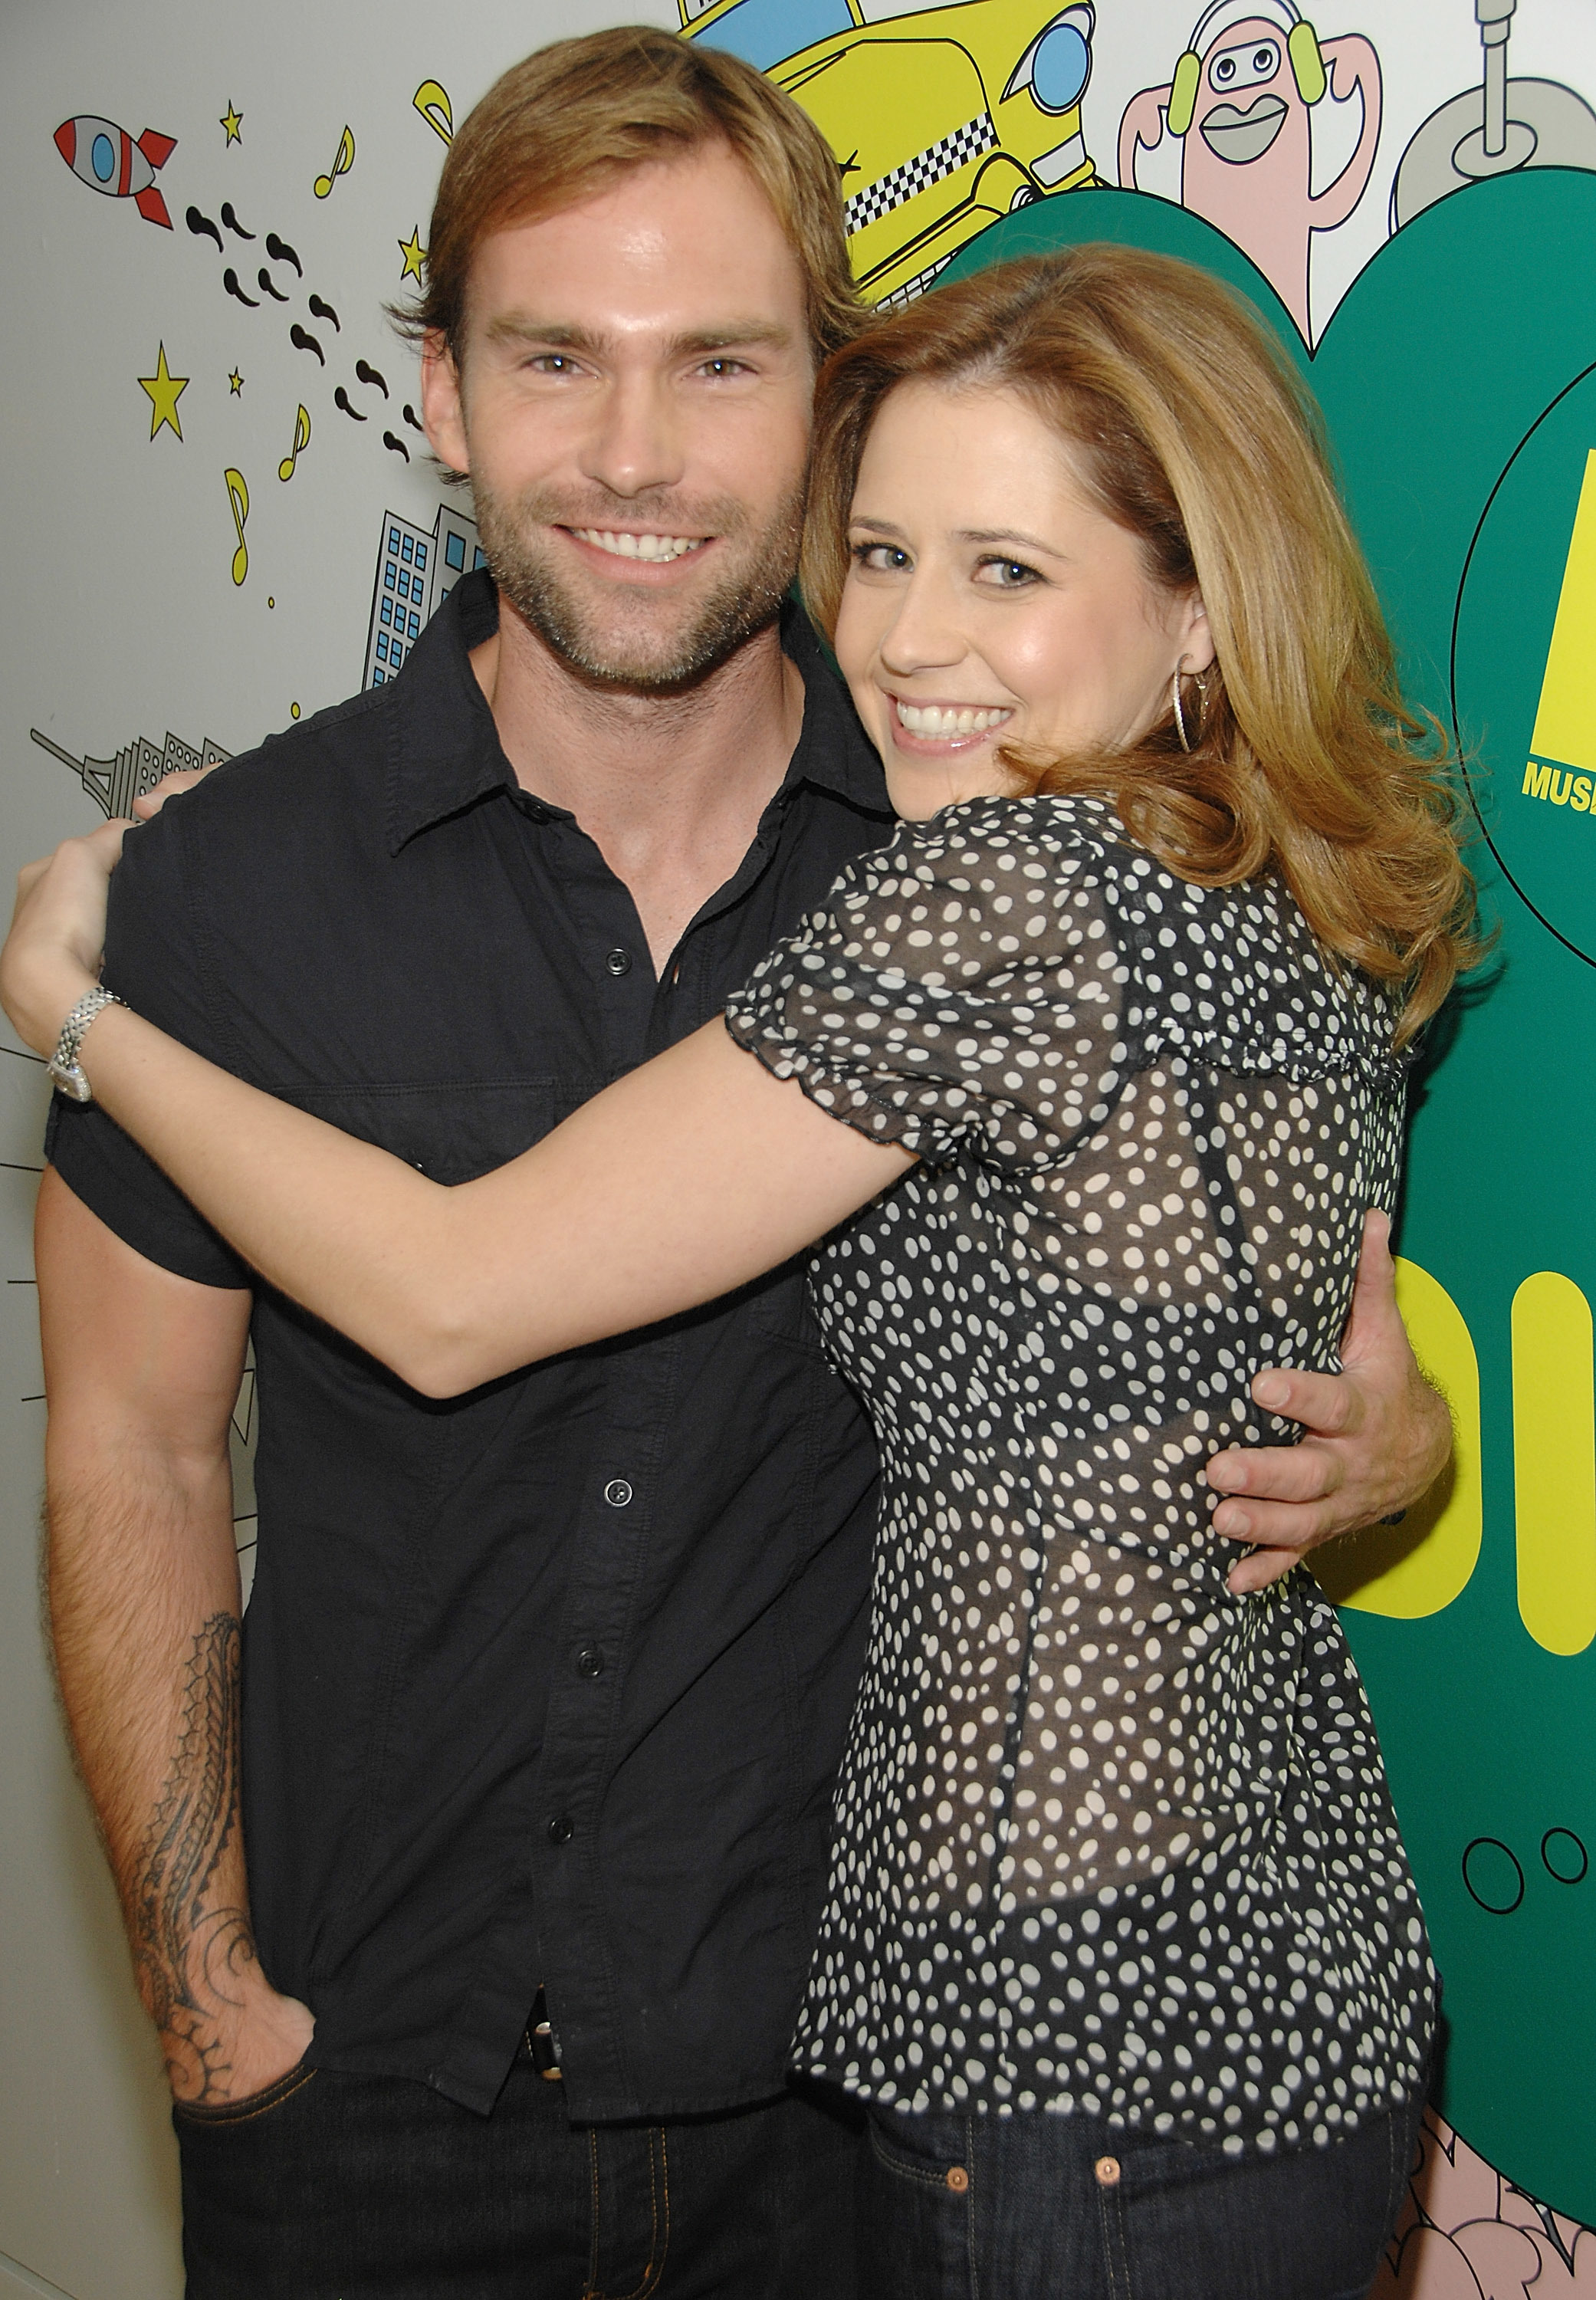 jenna fischer seann william HD Wallpaper